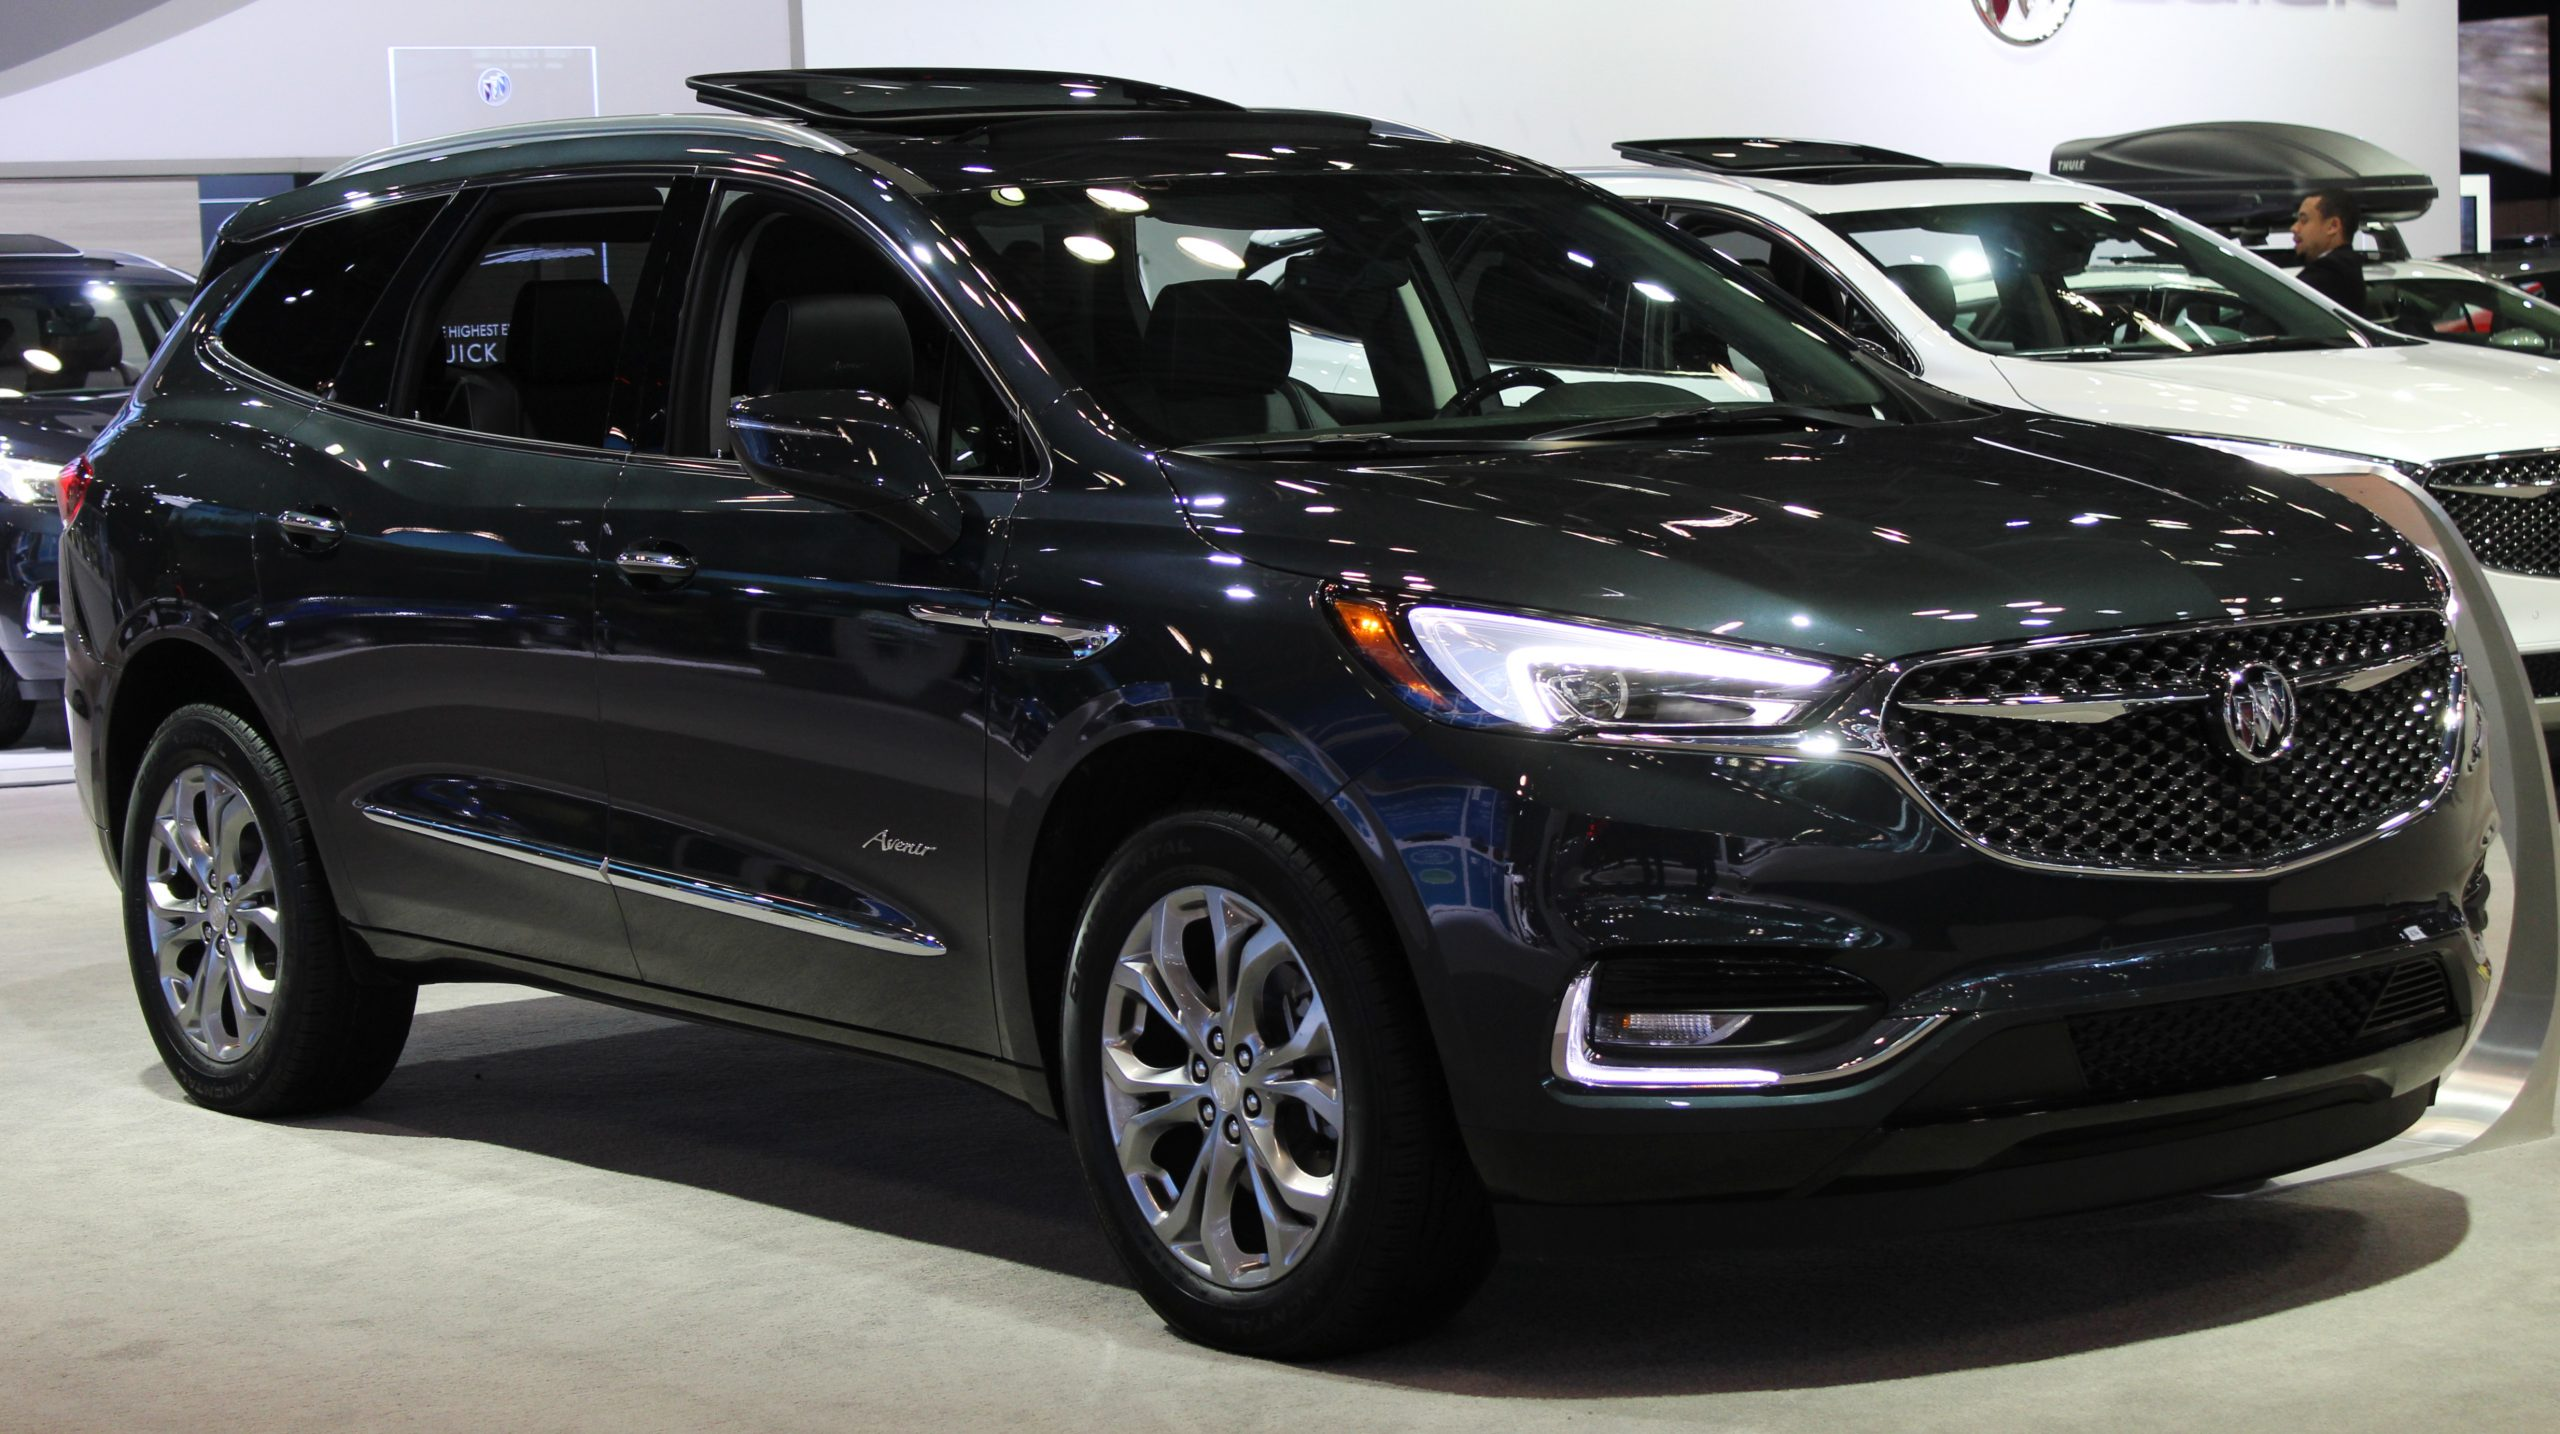 Buick Enclave - Wikipedia 2022 Buick Enclave Consumer Reviews, Color Options, Engine